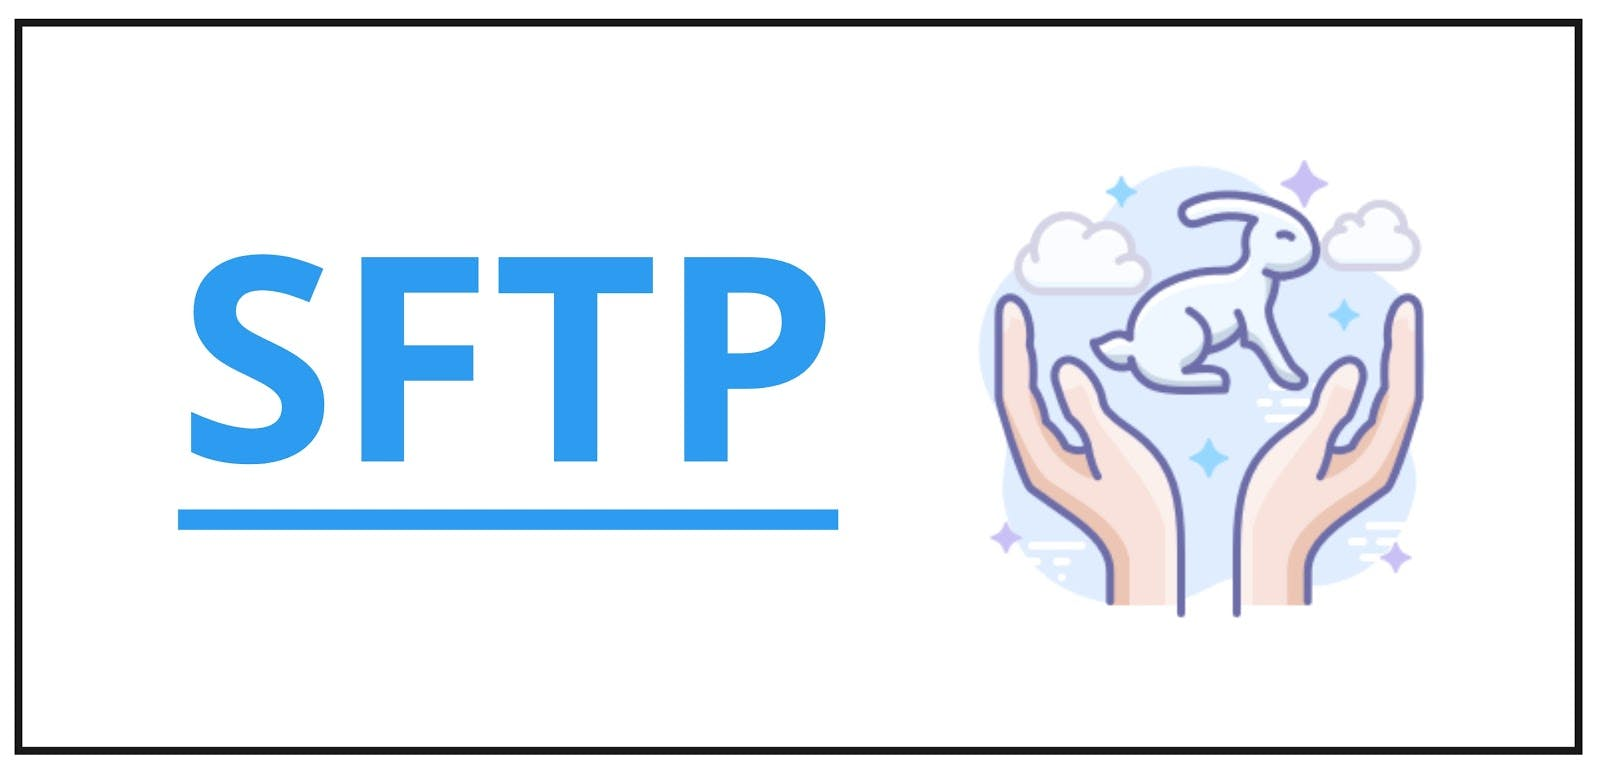 SFTP with image of hands and bunny.